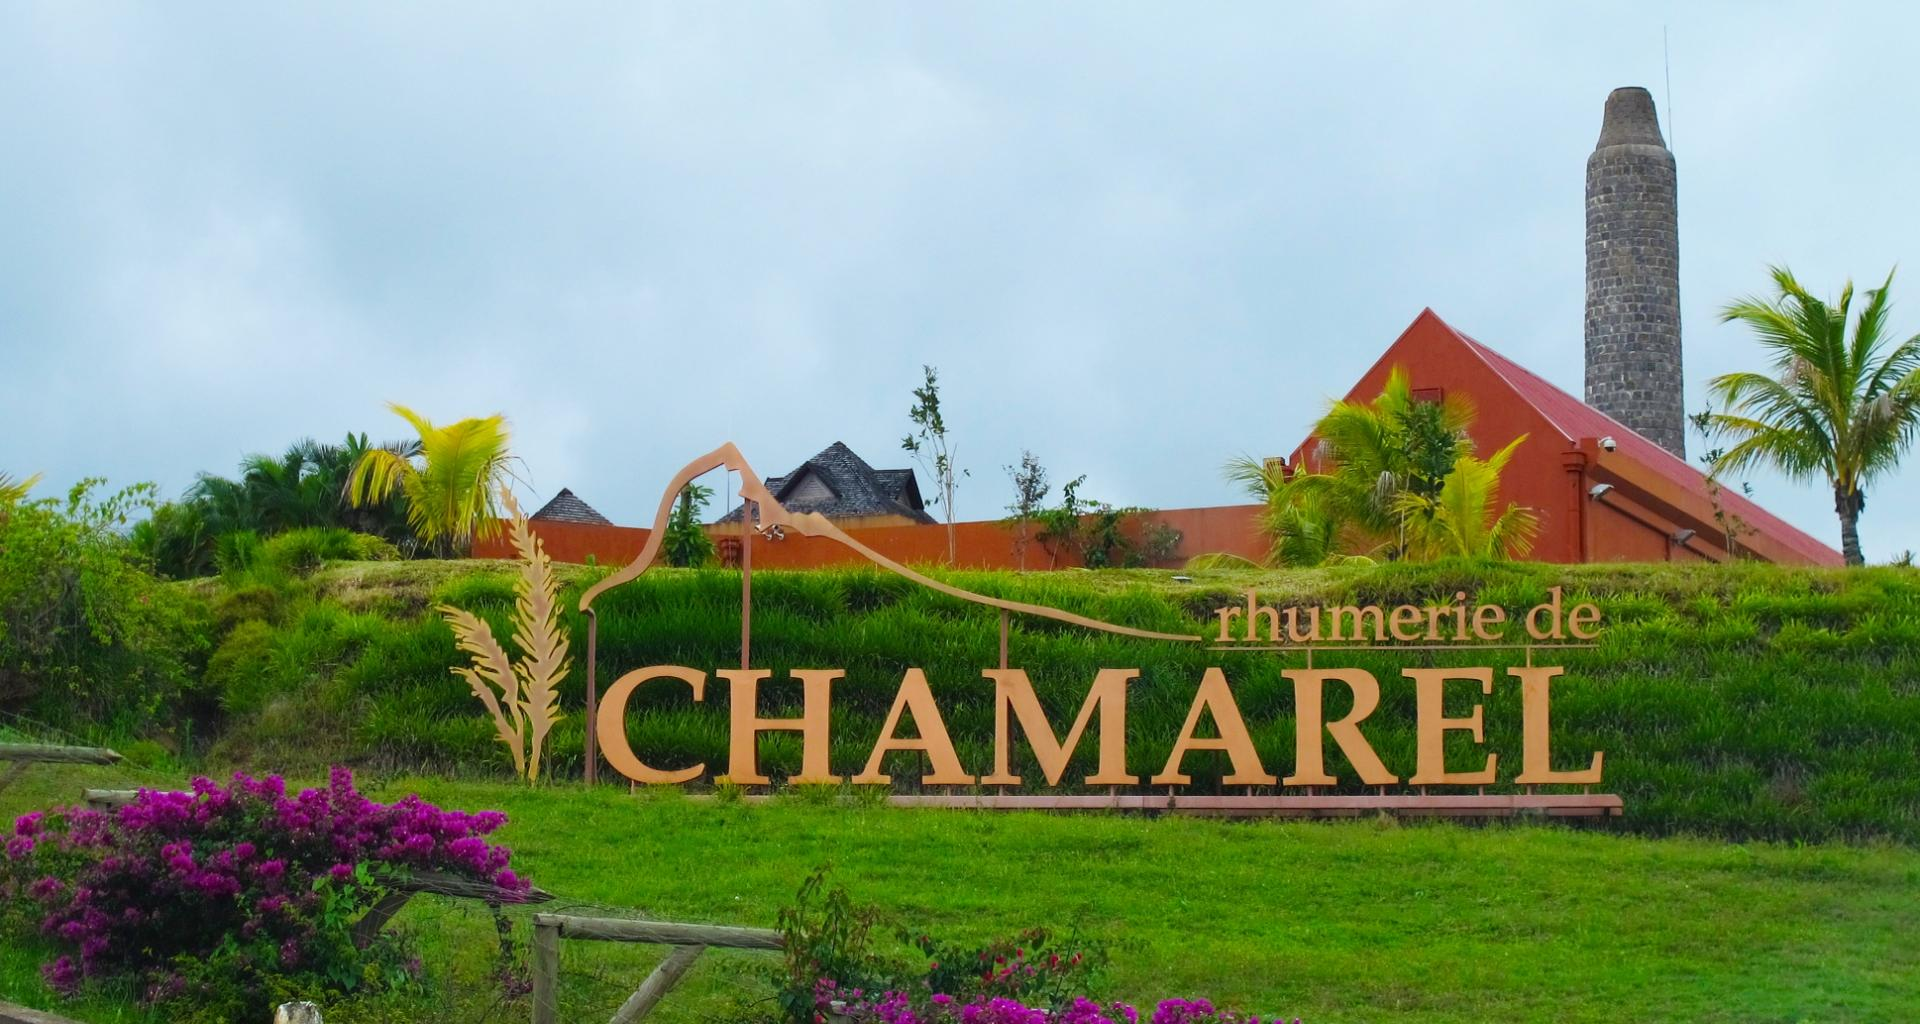 The Rhumerie de Chamarel